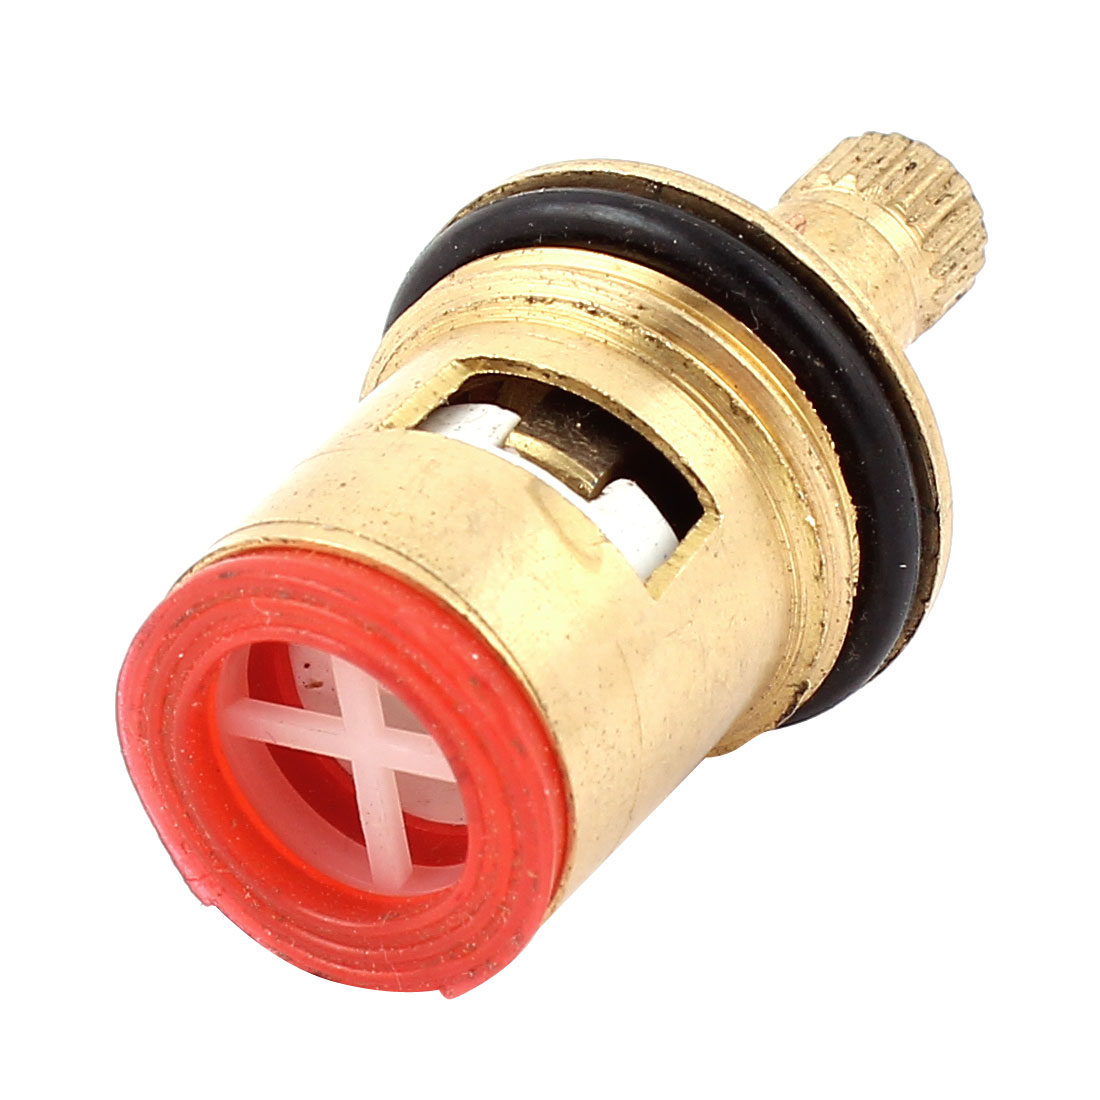 Basin Kitchen Bathroom Gold Tone Faucet Water Tap Fitting Inner Faucets Cartridge Valve Core